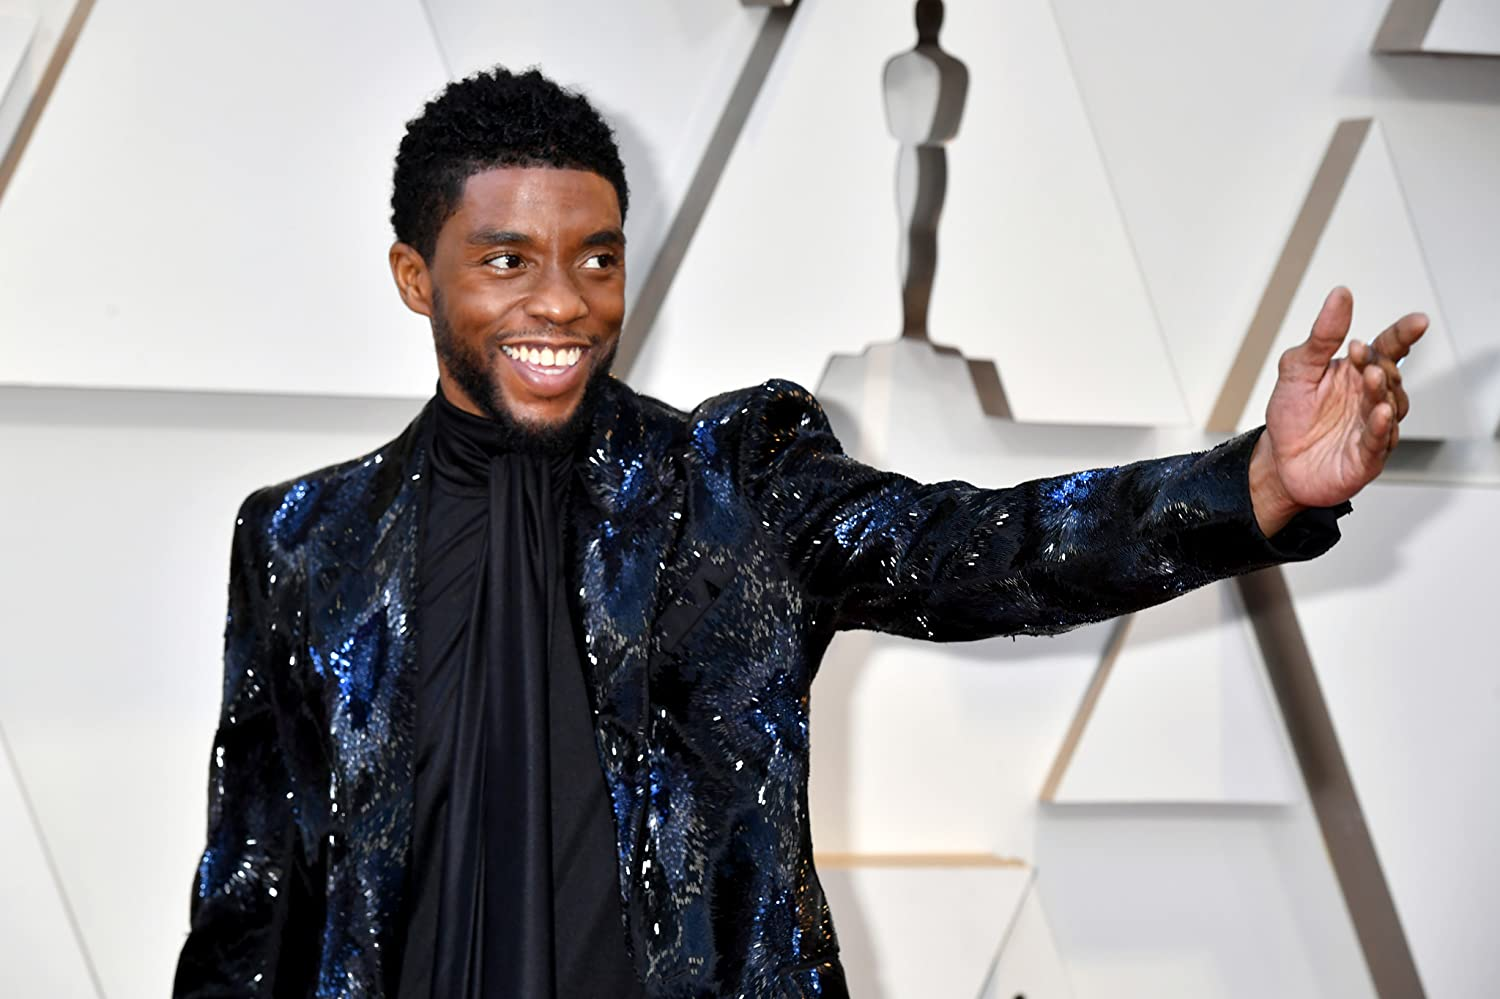 Chadwick Boseman at an event for The Oscars (2019)